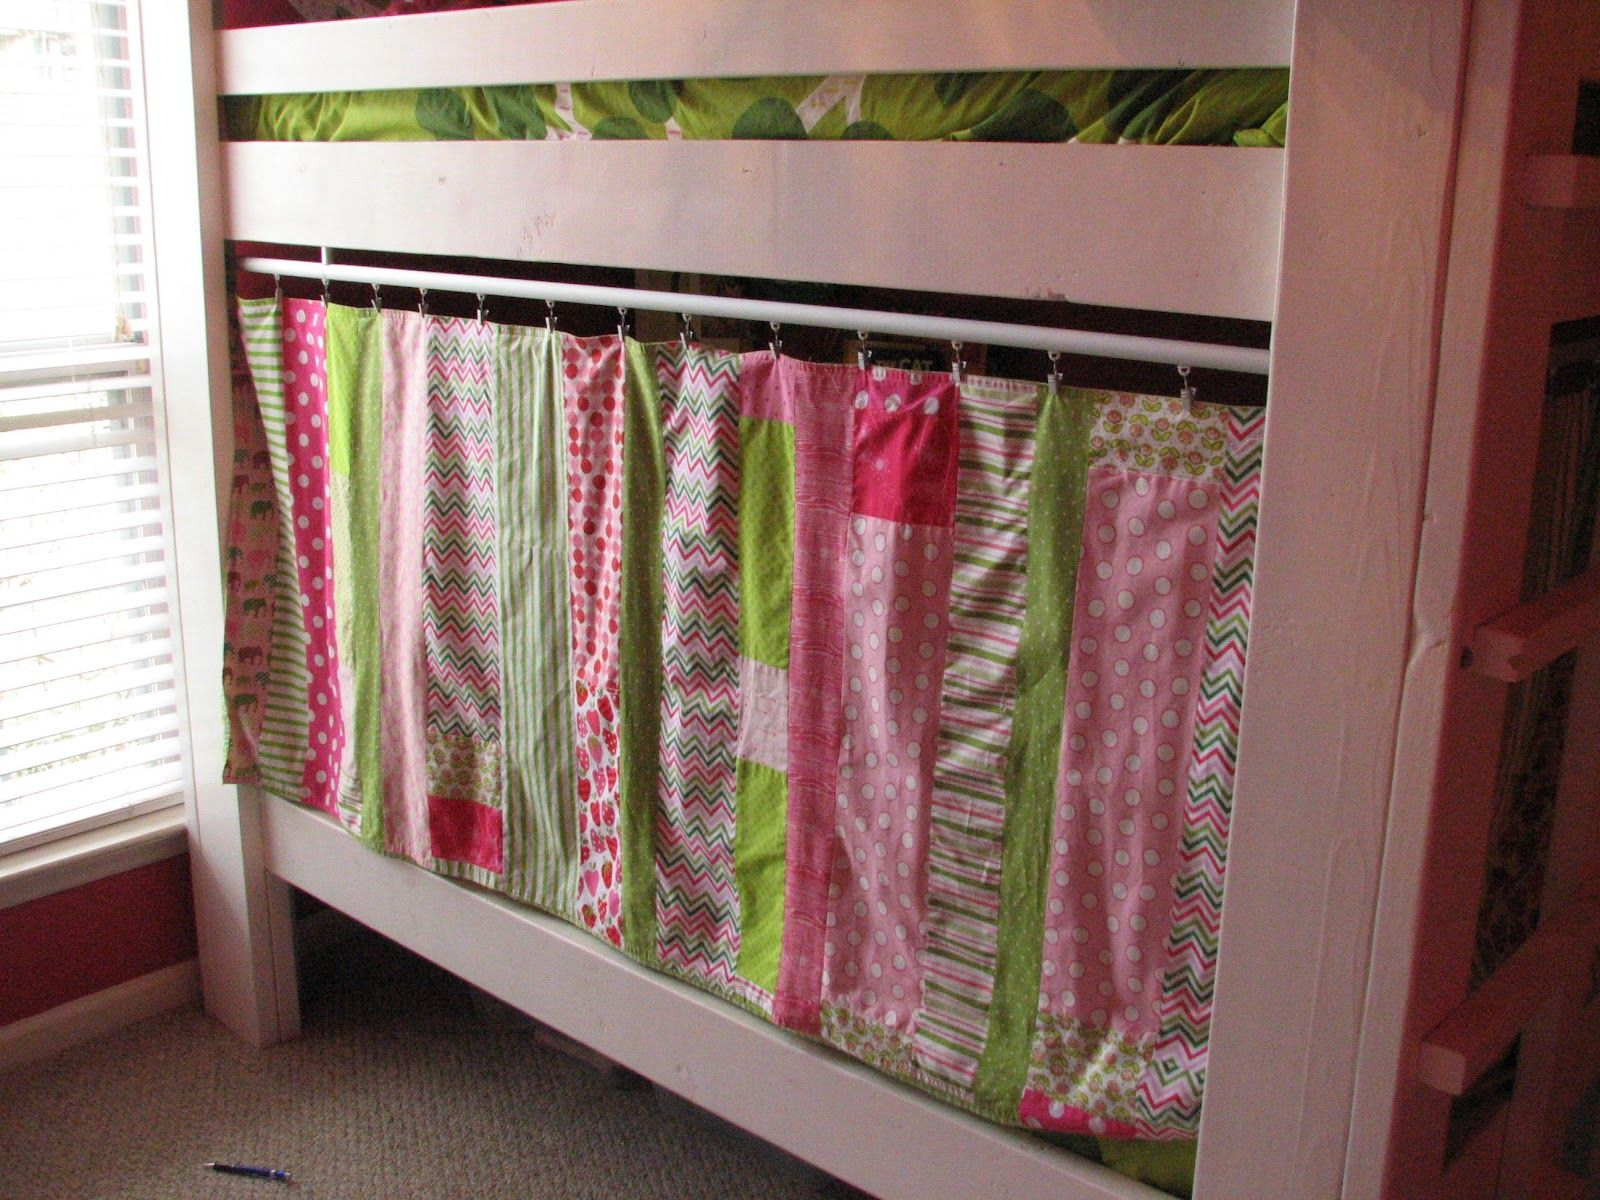 Bunk Bed Curtains Ikea - Bunk bed privacy and nice idea for simple bookshelf and lighting inside the bunk like